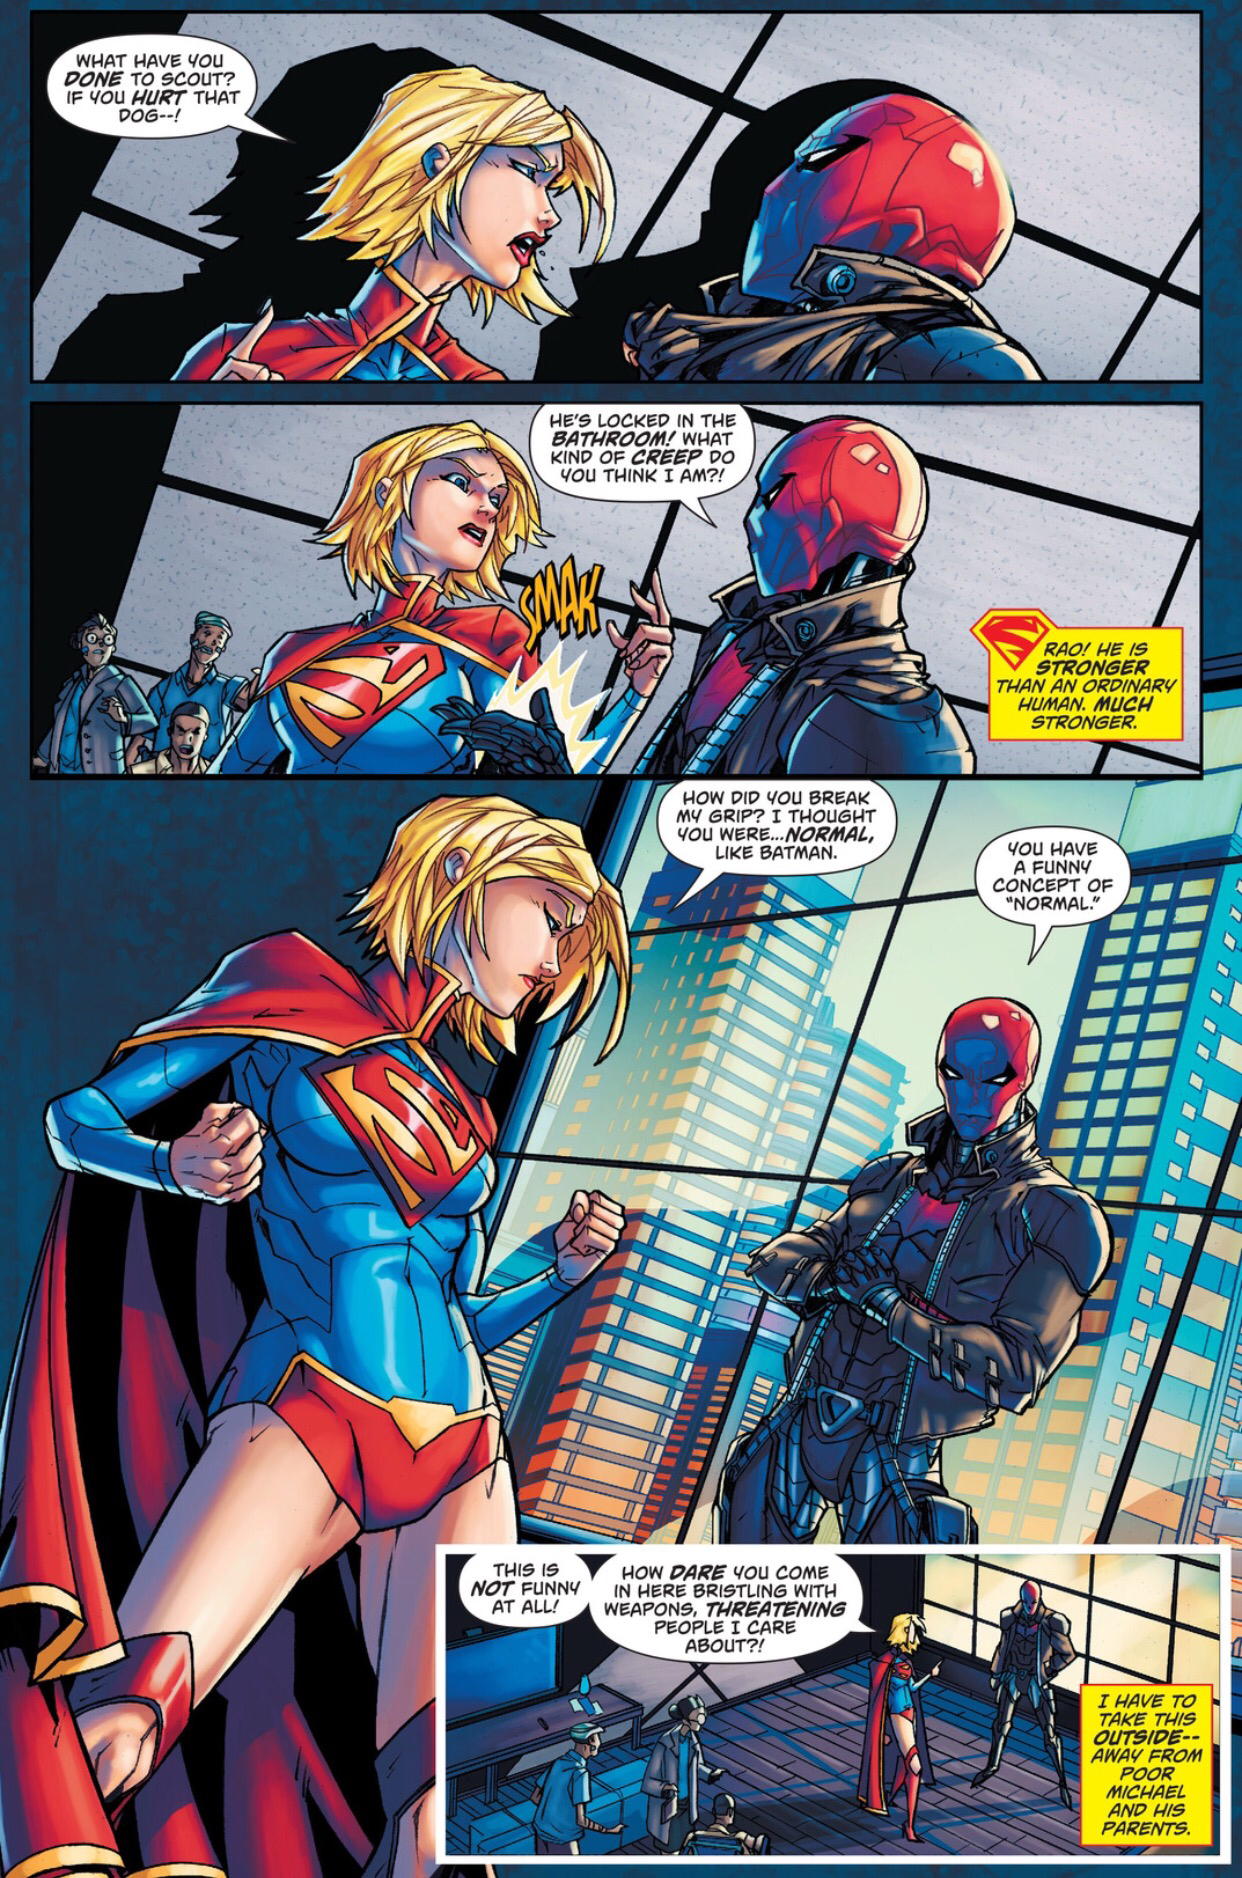 Supergirl and The Red Hood team up  |